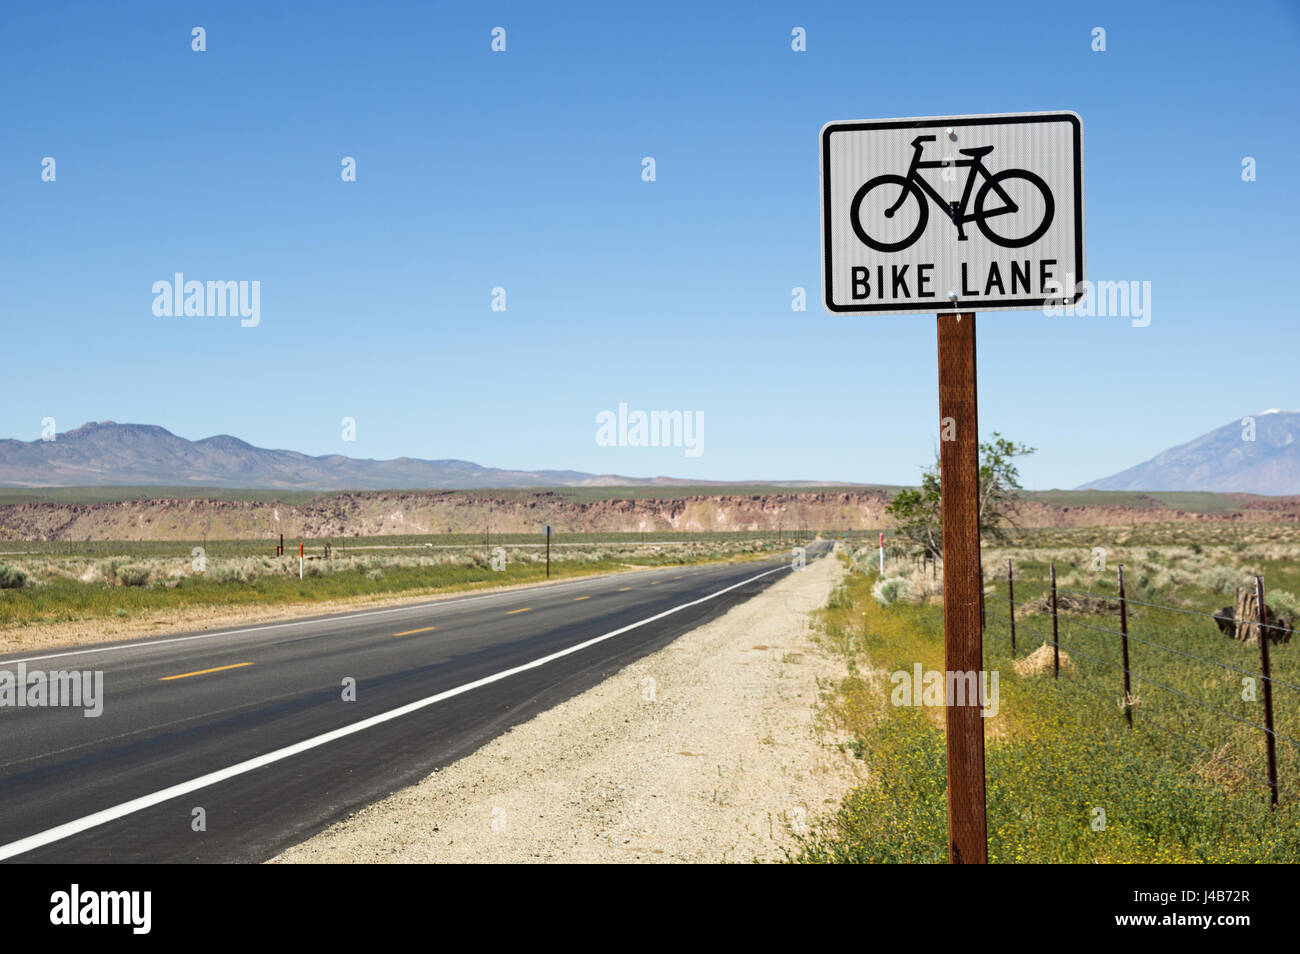 bike lane sign on the side of straight road in the Owens Valley countryside - Stock Image